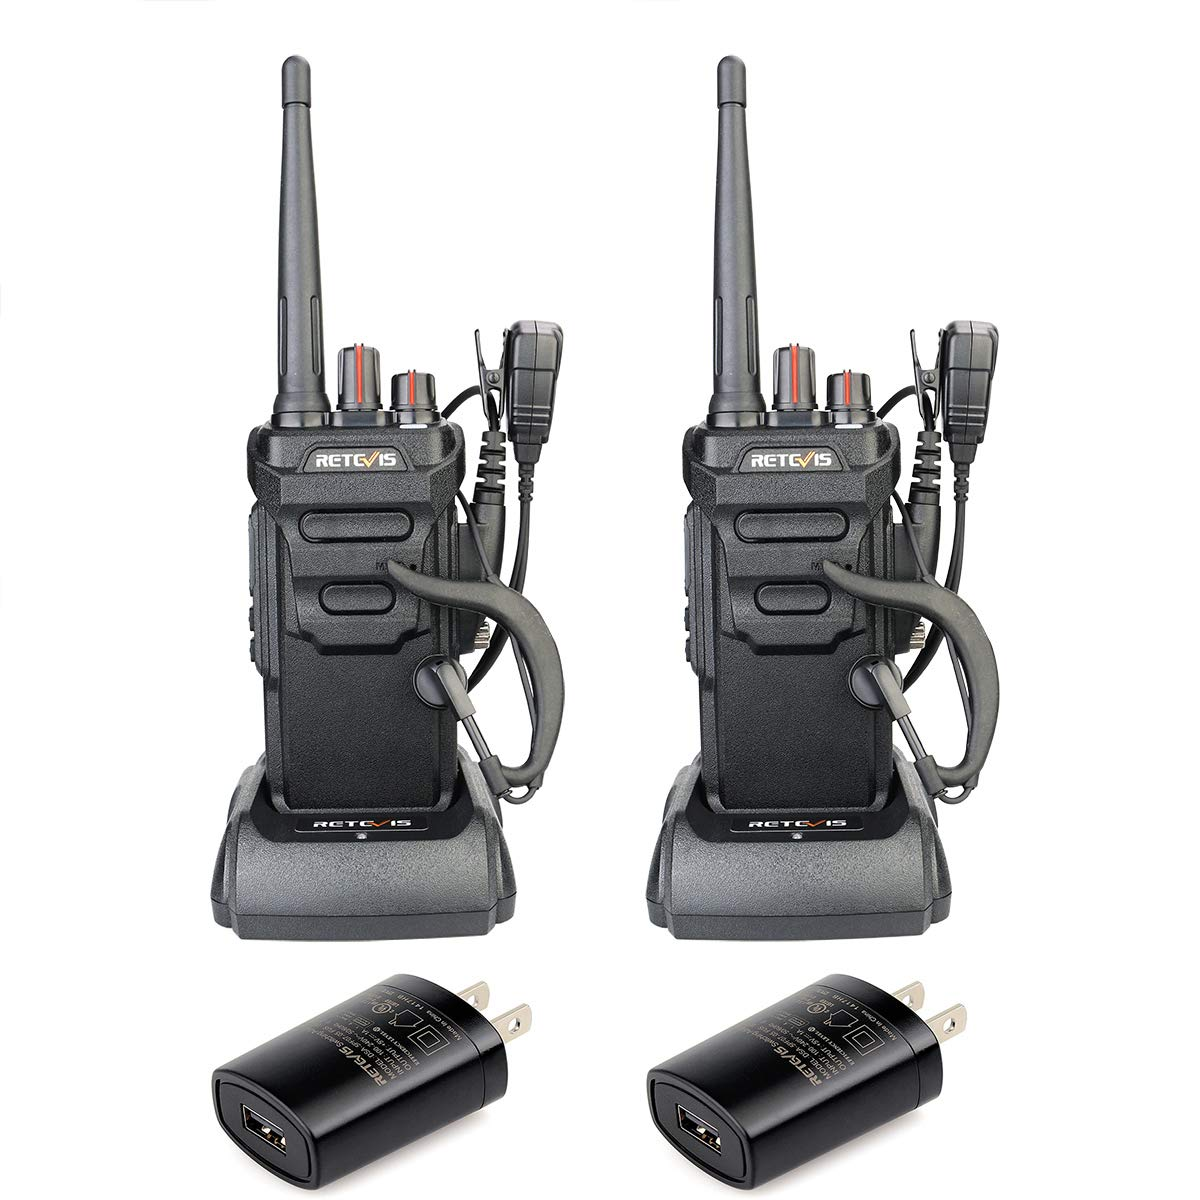 Retevis RT48 Walkie Talkie for Adults Long Range IP67 VOX Monitor Scrambler Security Walkie Talkies Waterproof (2 Pack)